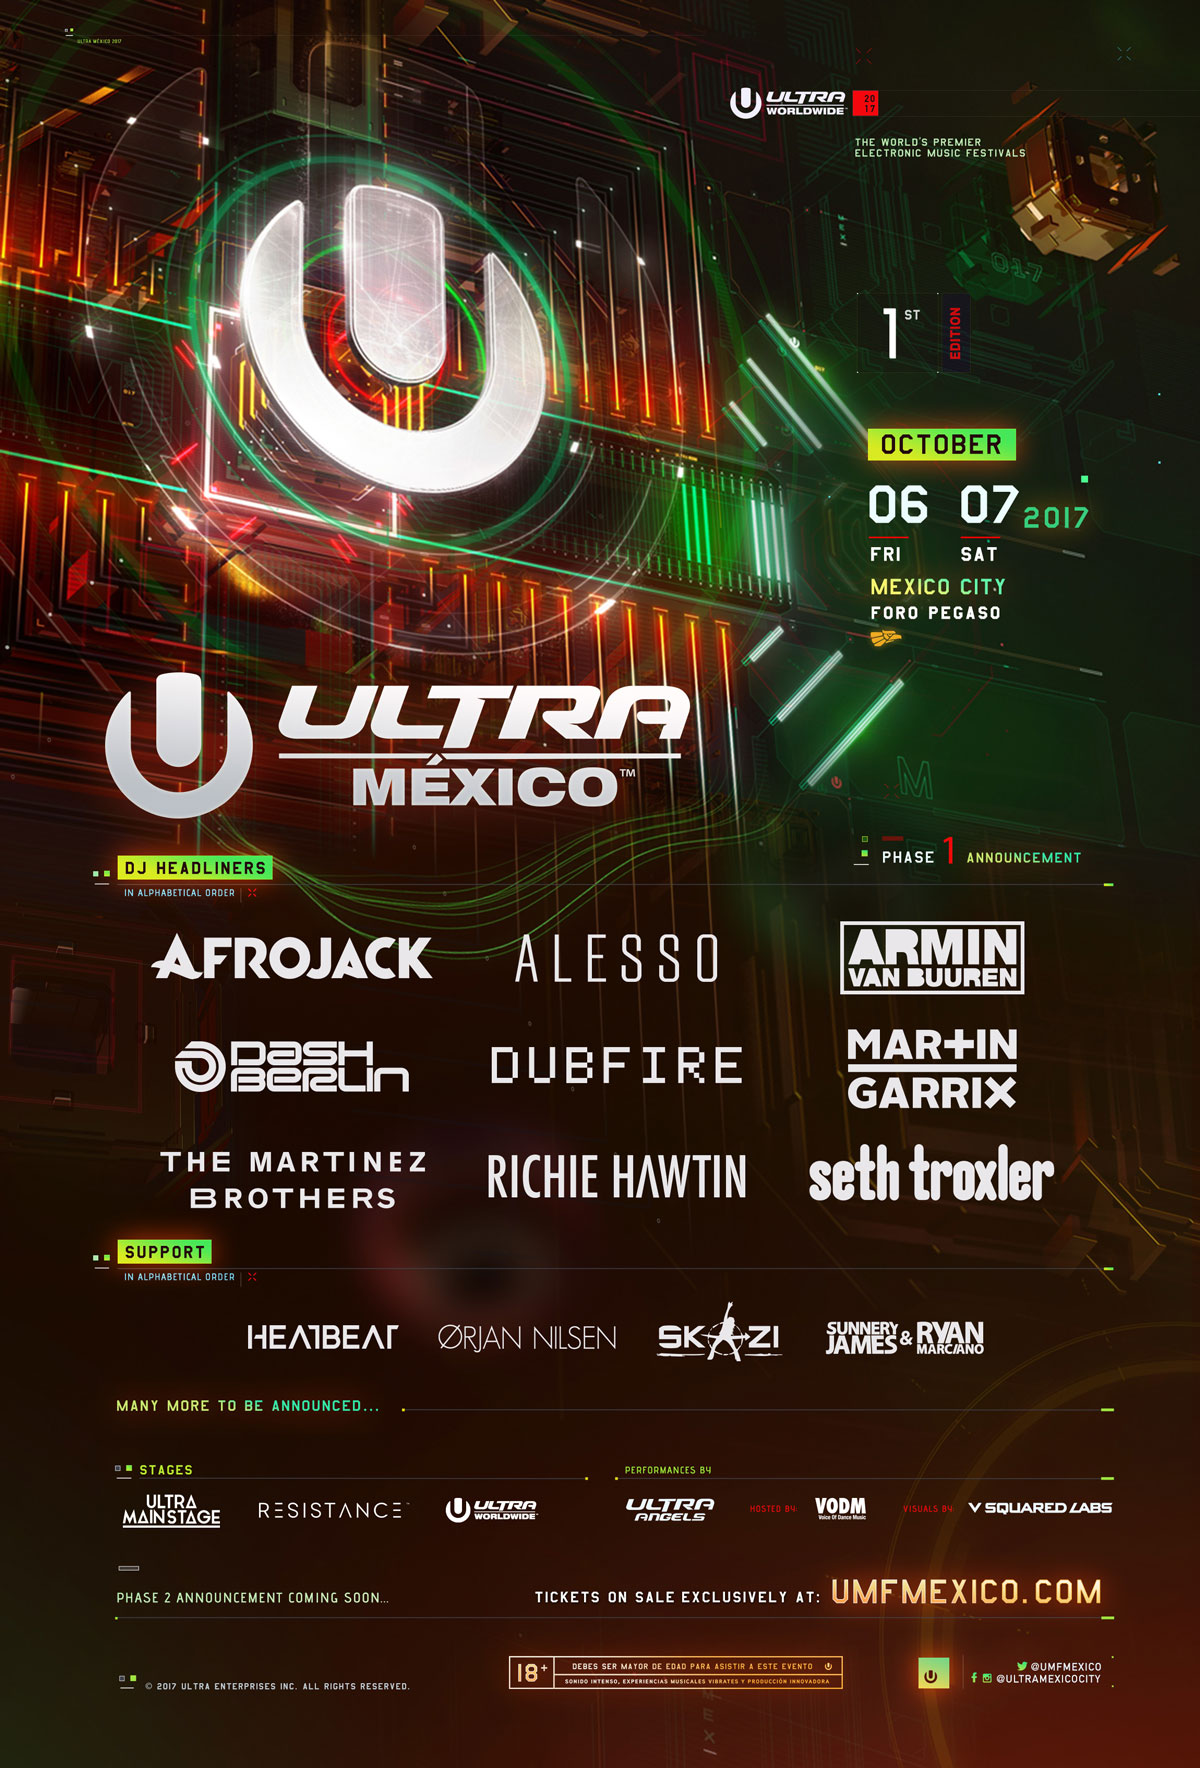 mexico-lineup-phase1-revista-backstages-brasil